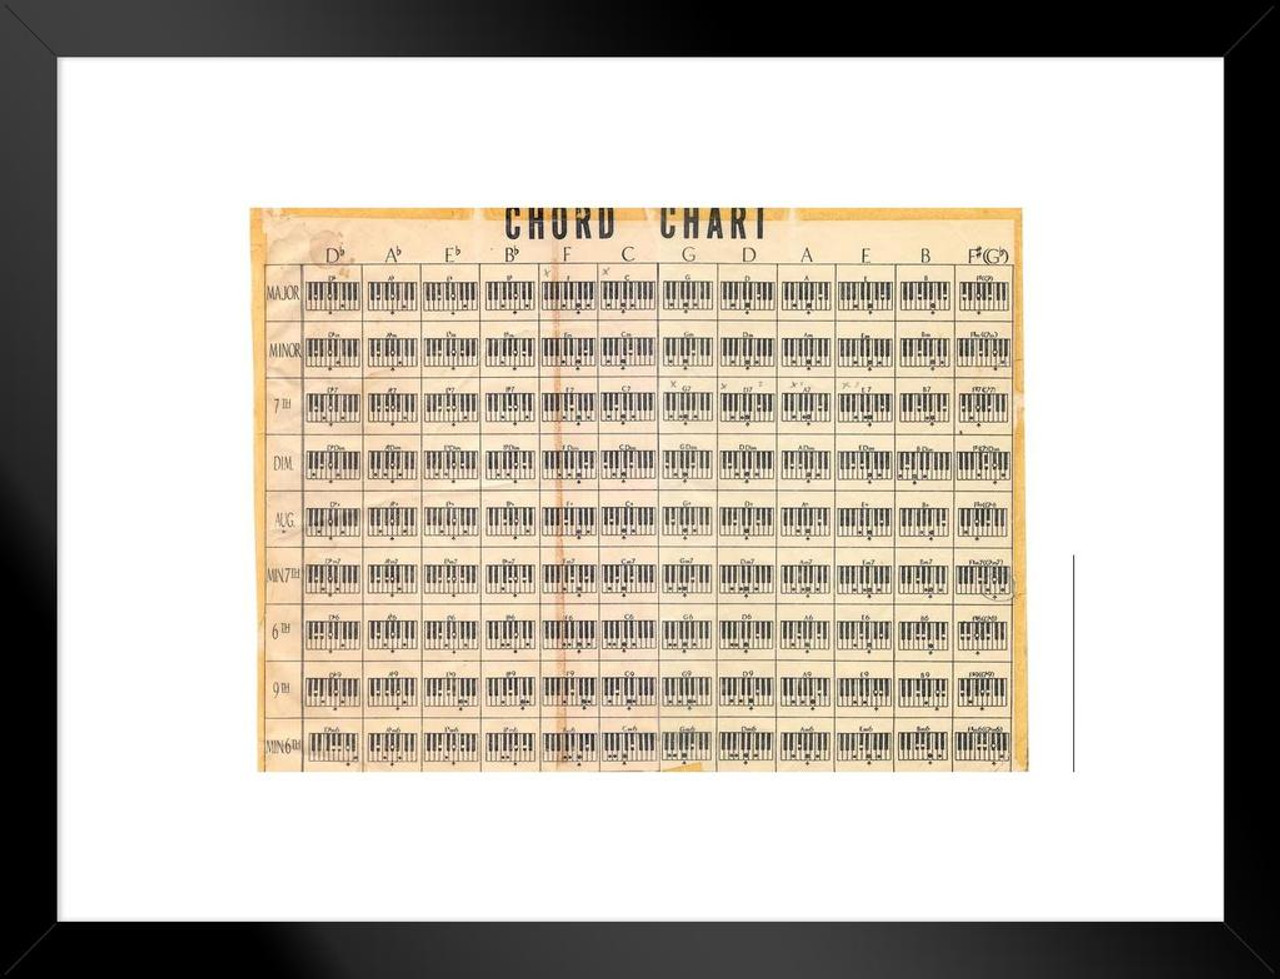 KEYBOARD PIANO CHORDS LEARNING LARGE WALL POSTER WALL ART PRINT DIAGRAM